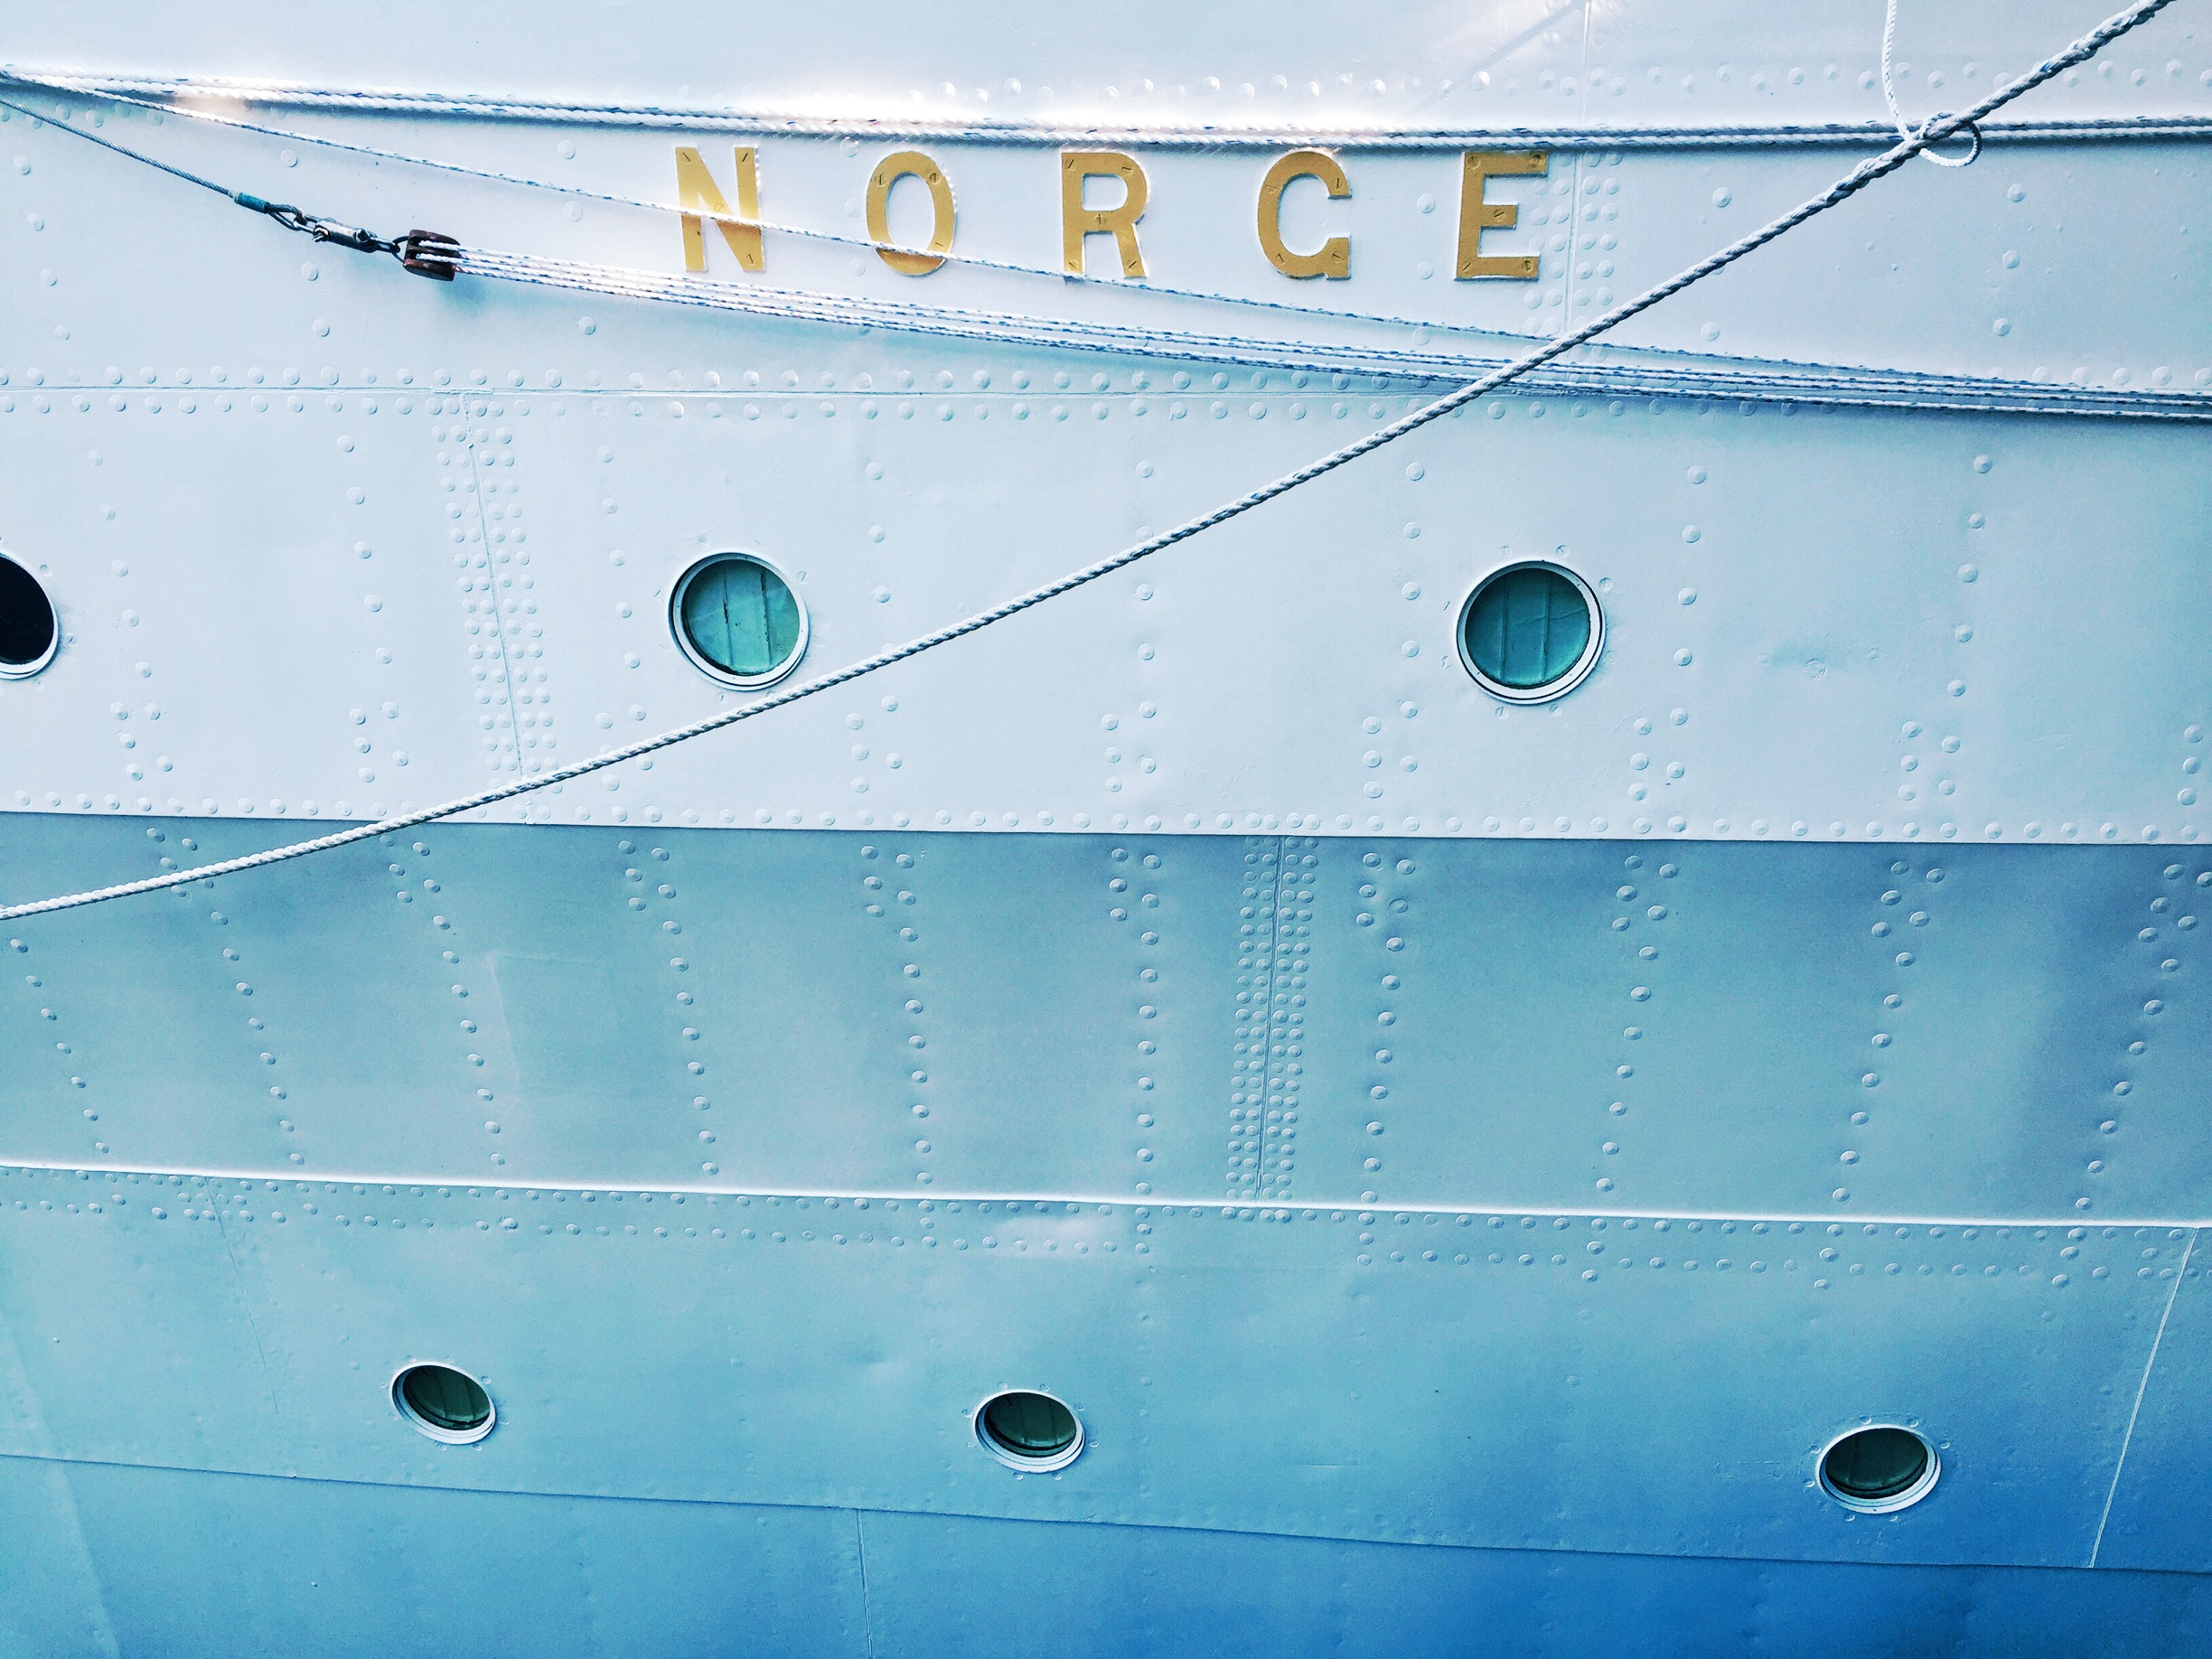 I stumbled upon a Norweigan ship docked at Sugar Beach.